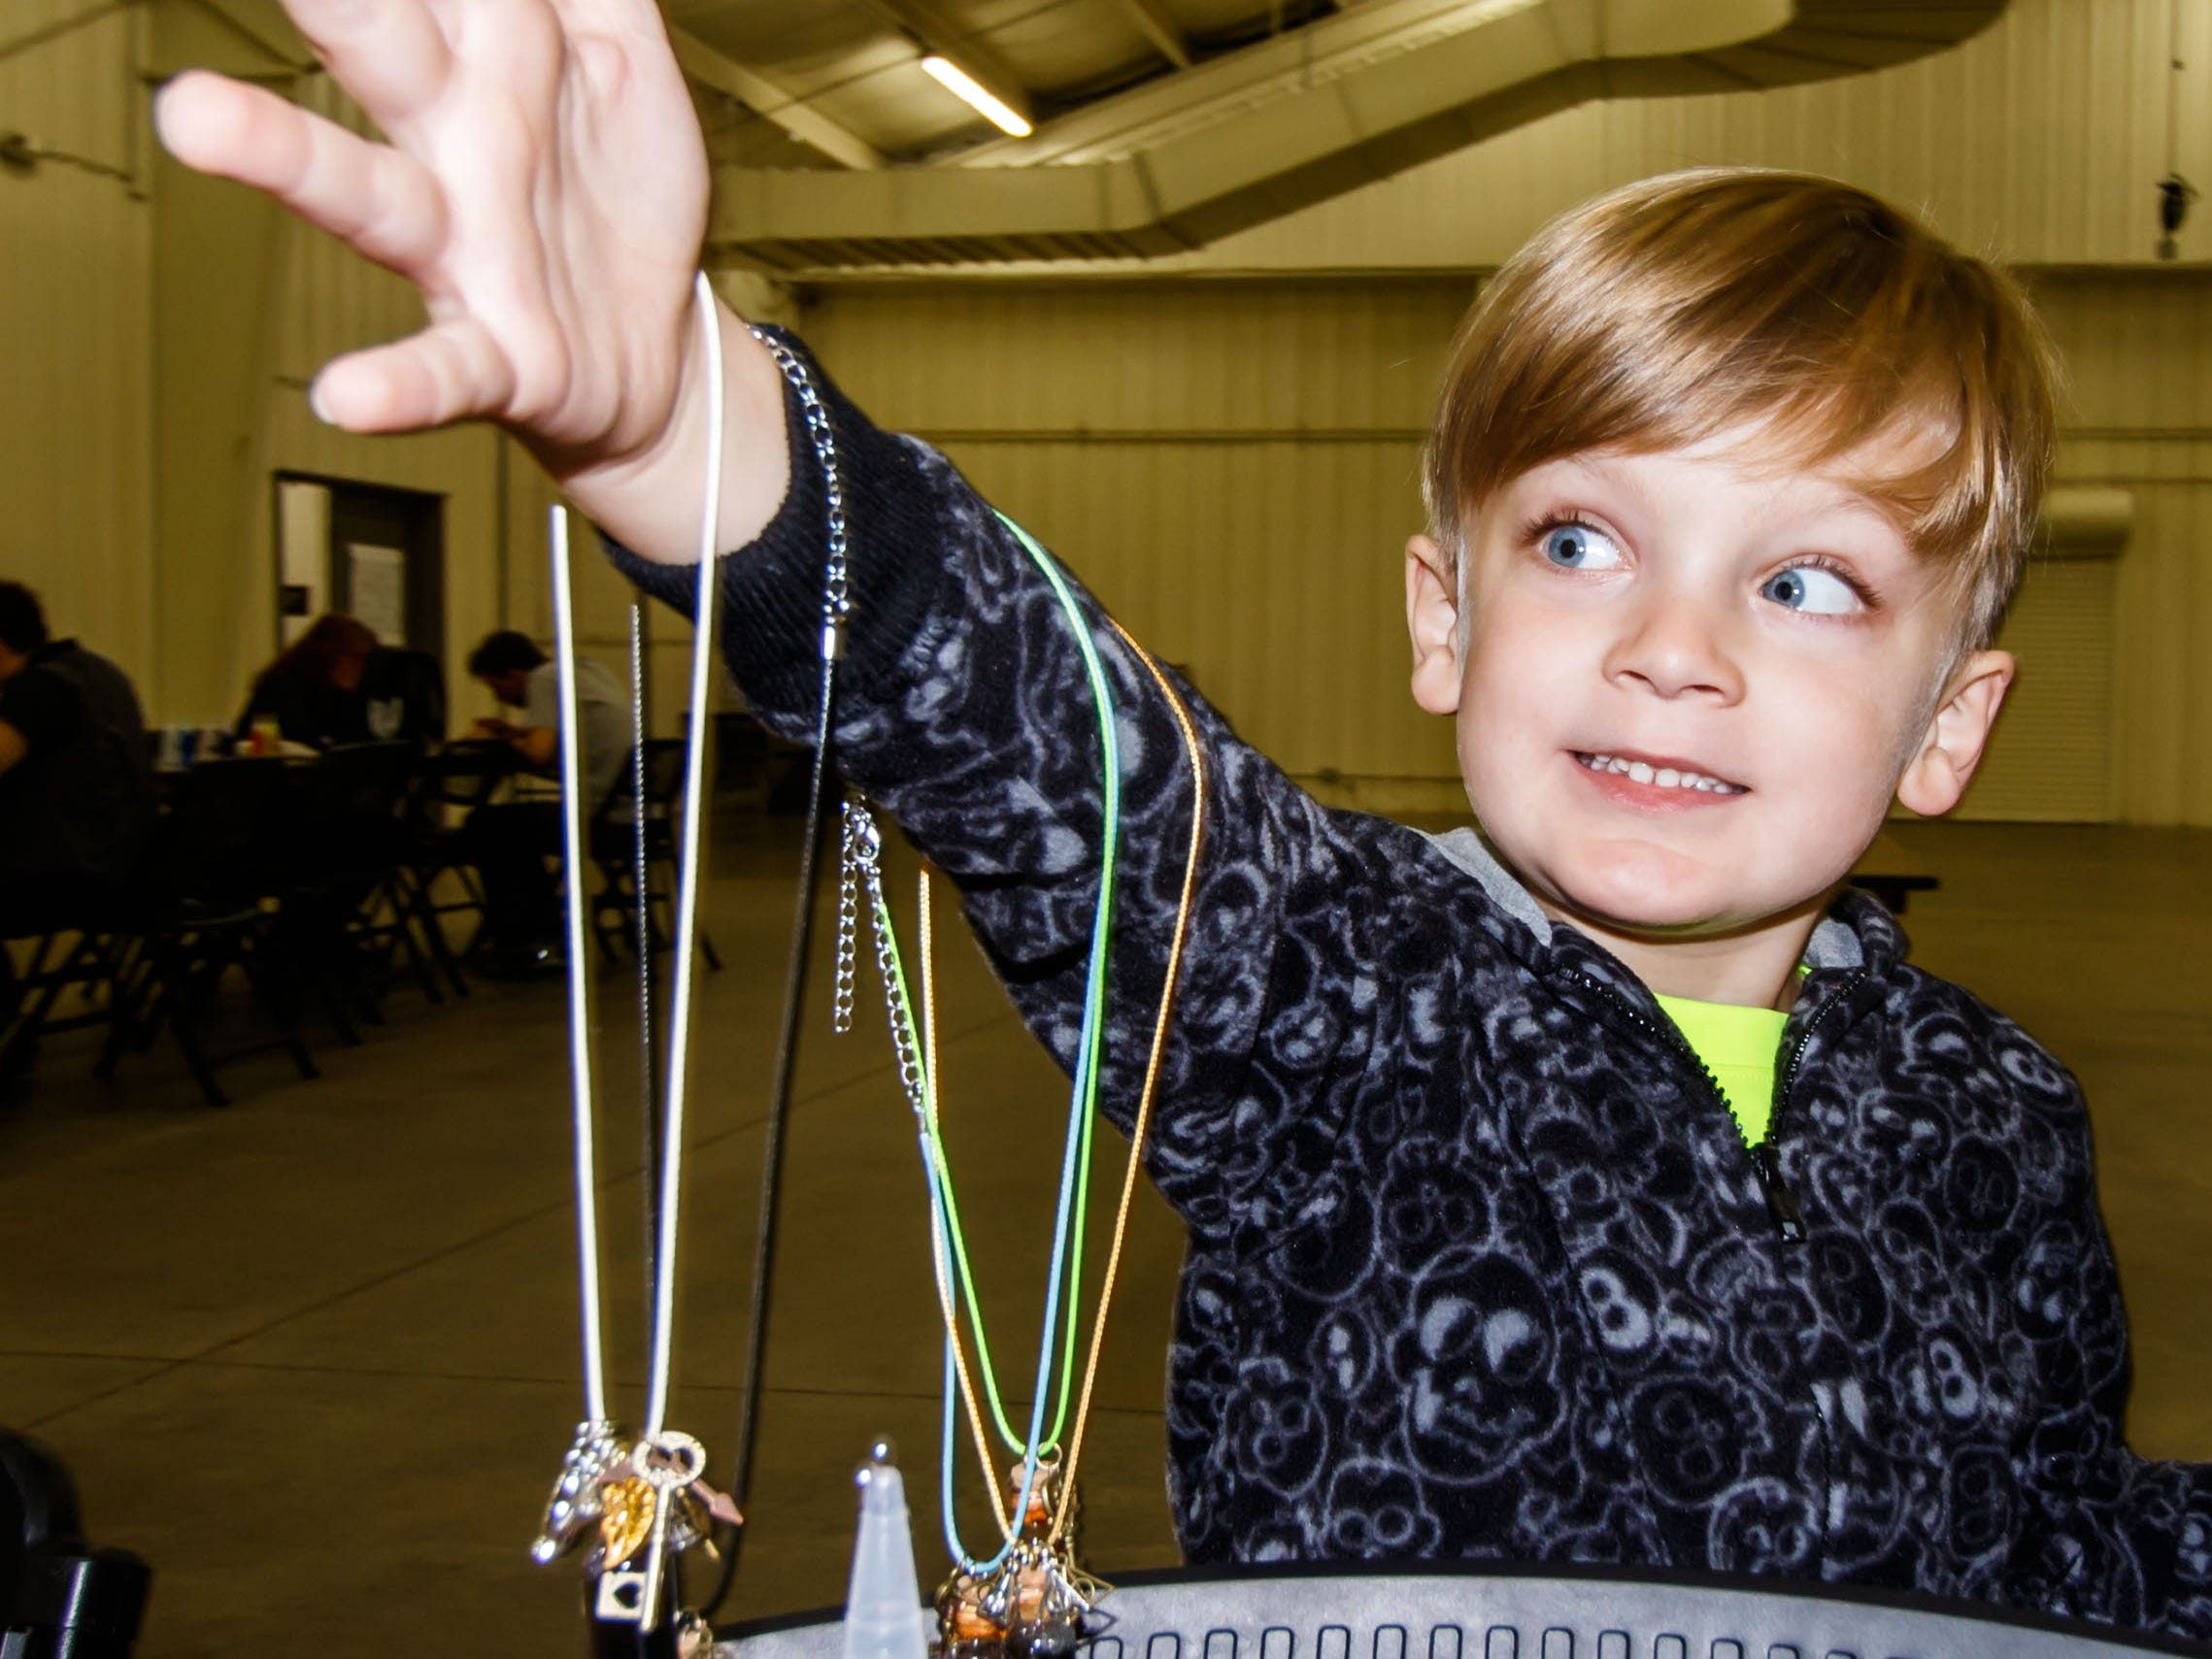 Brody O'Neil, 6, of Waukesha shows off the magical potion and charm necklaces he created during the Midwest Magic Fest at the Waukesha Expo Center on Sunday, Sept. 23, 2018. The family friendly event featured one-of-a-kind entertainment, mythical creatures, games, crafts, vendors, unique photo-ops, costume contests and much more.